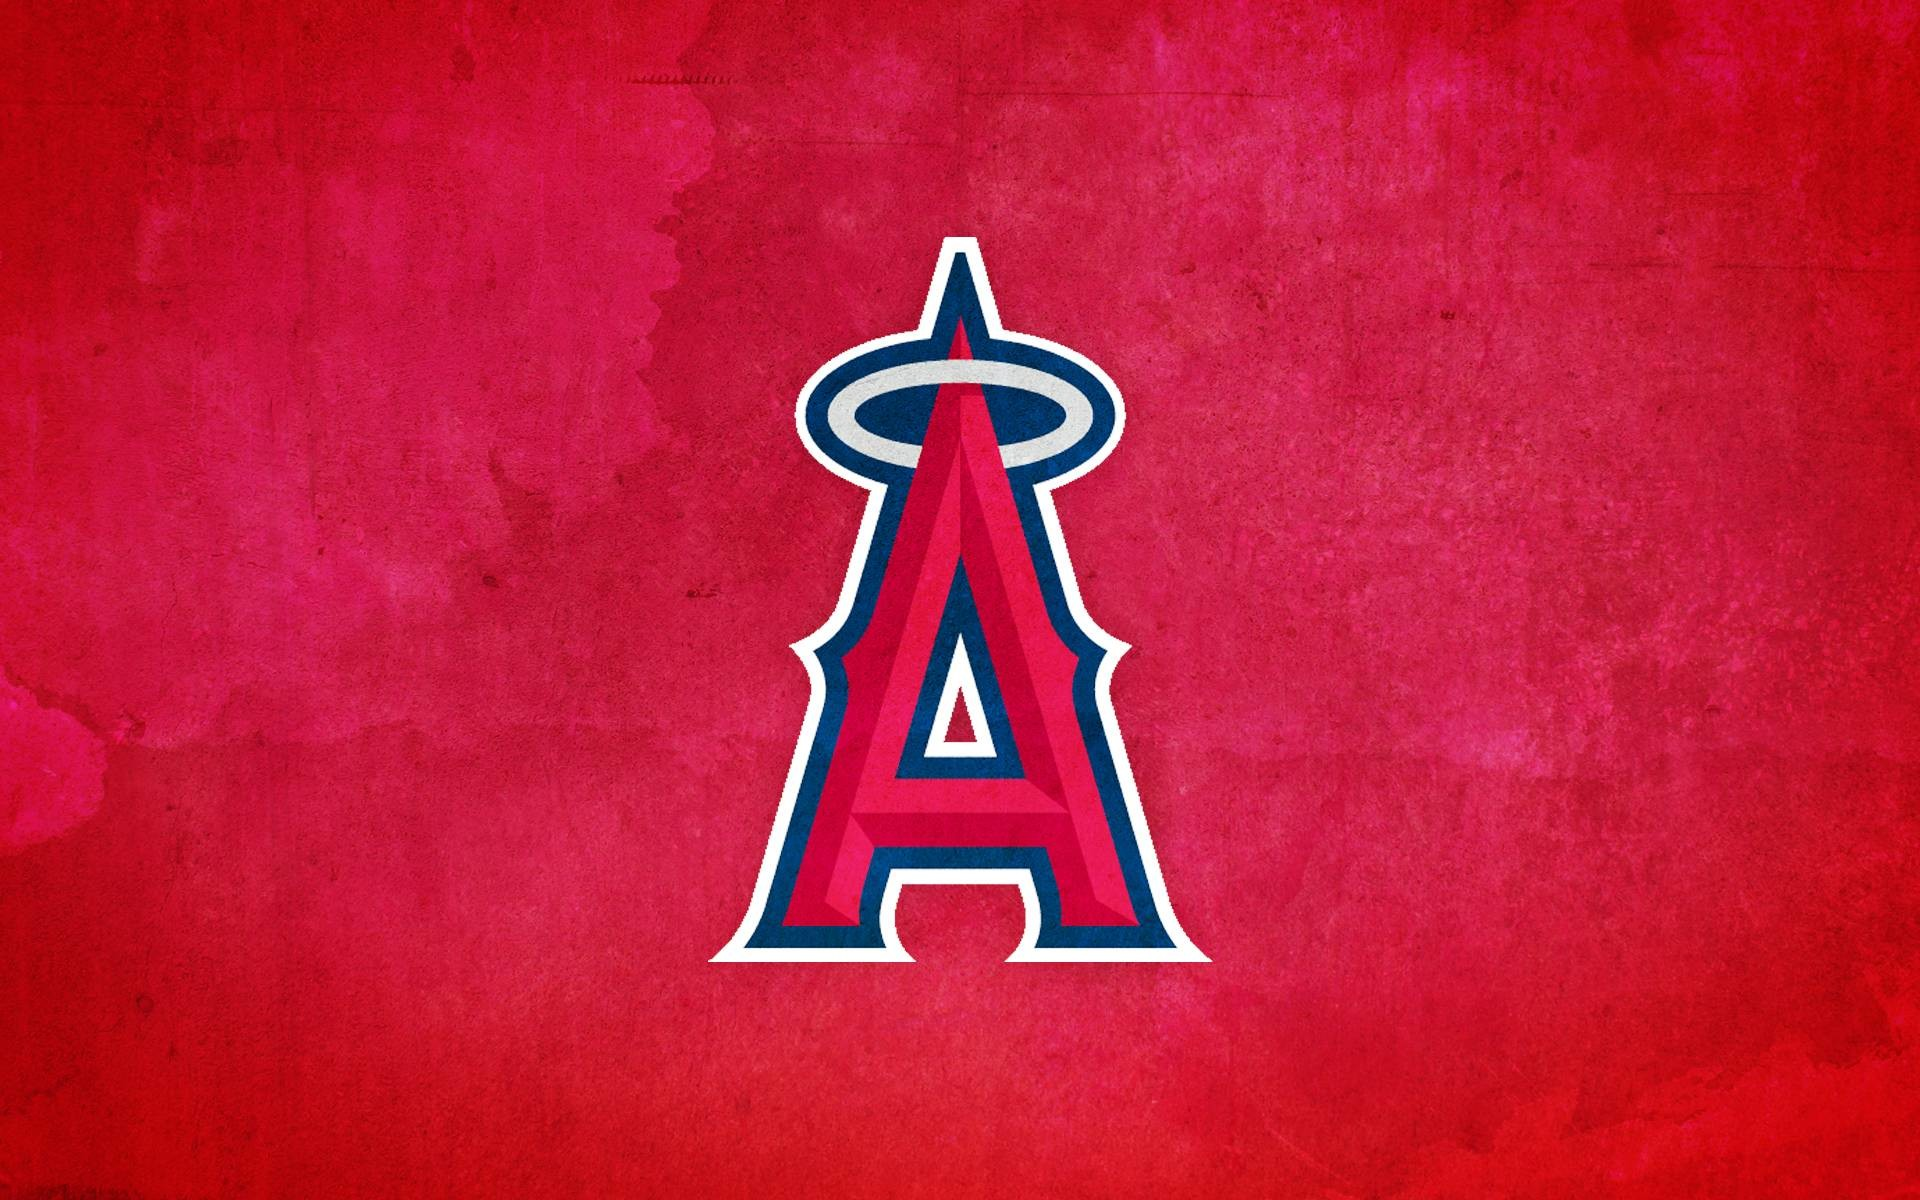 1920x1200 Angels Baseball Wallpapers - Wallpaper Cave